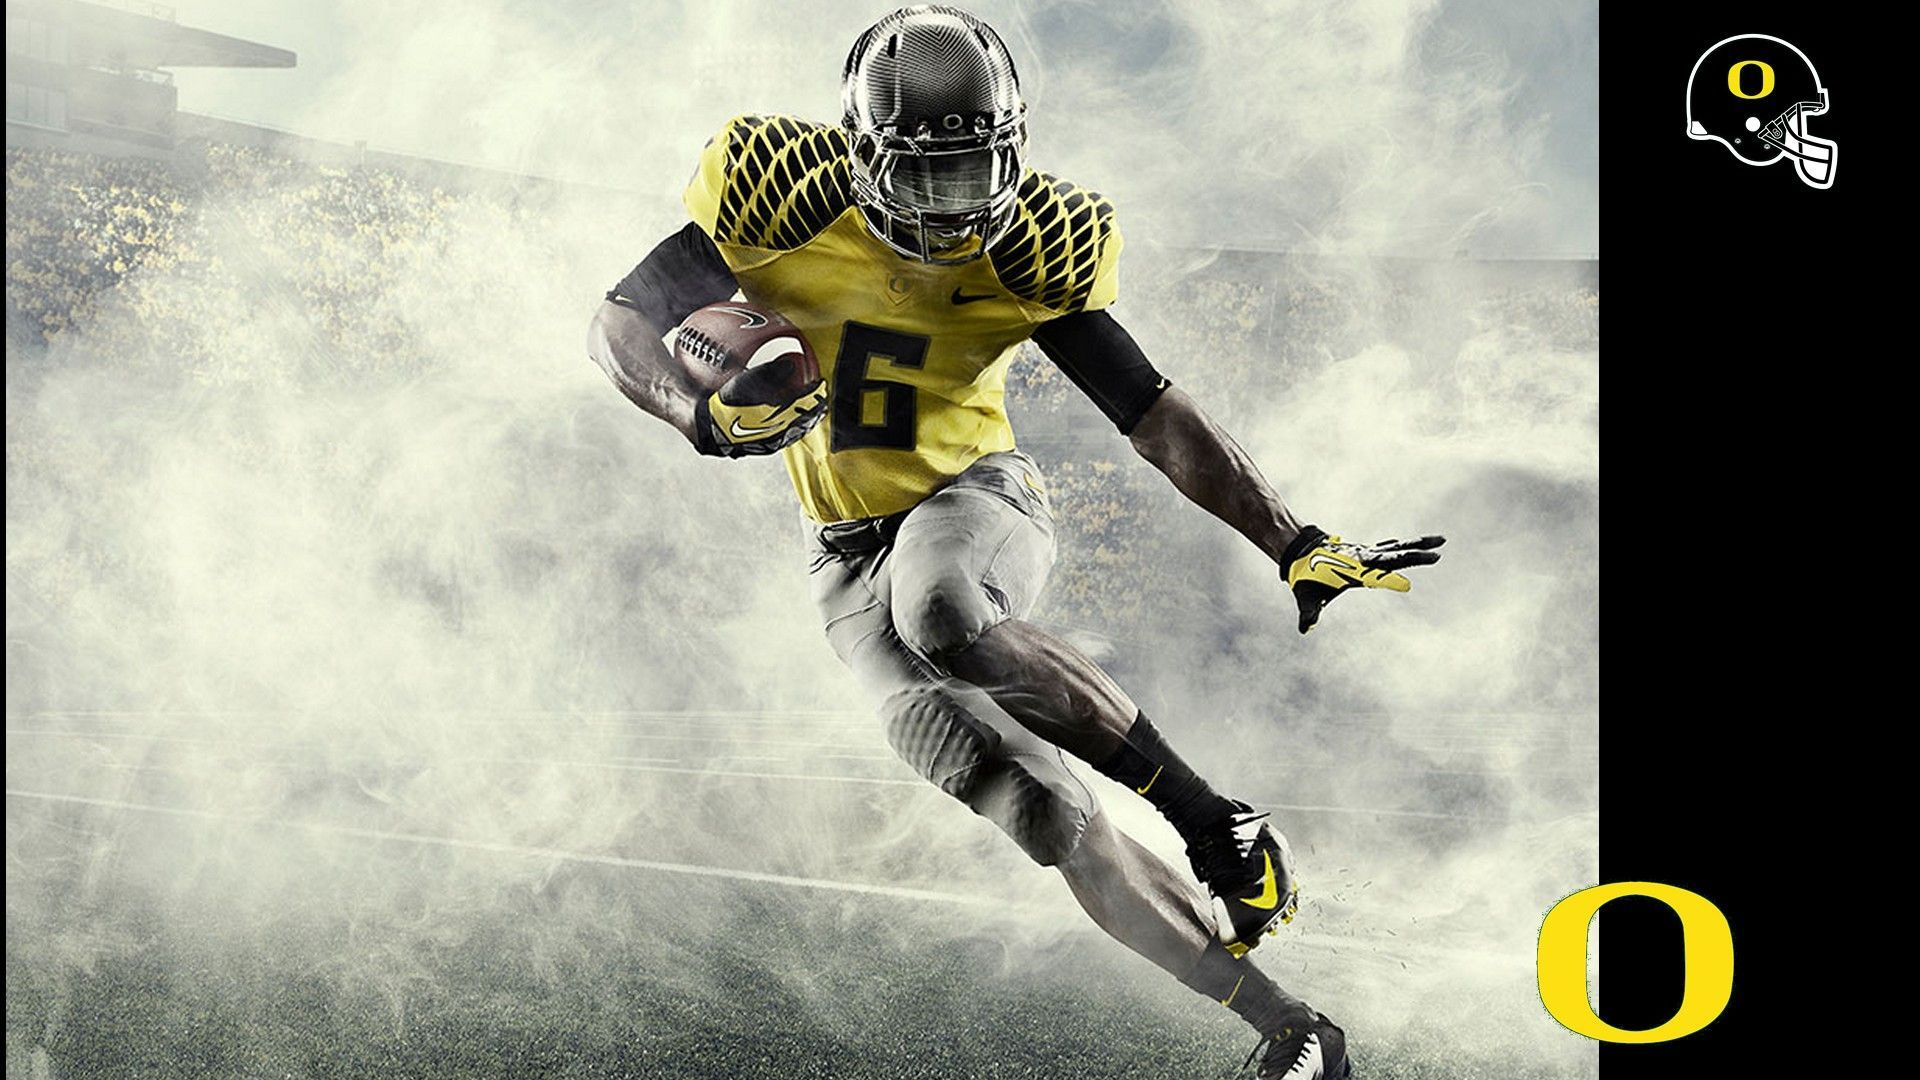 College Football Wallpapers - Wallpaper Cave